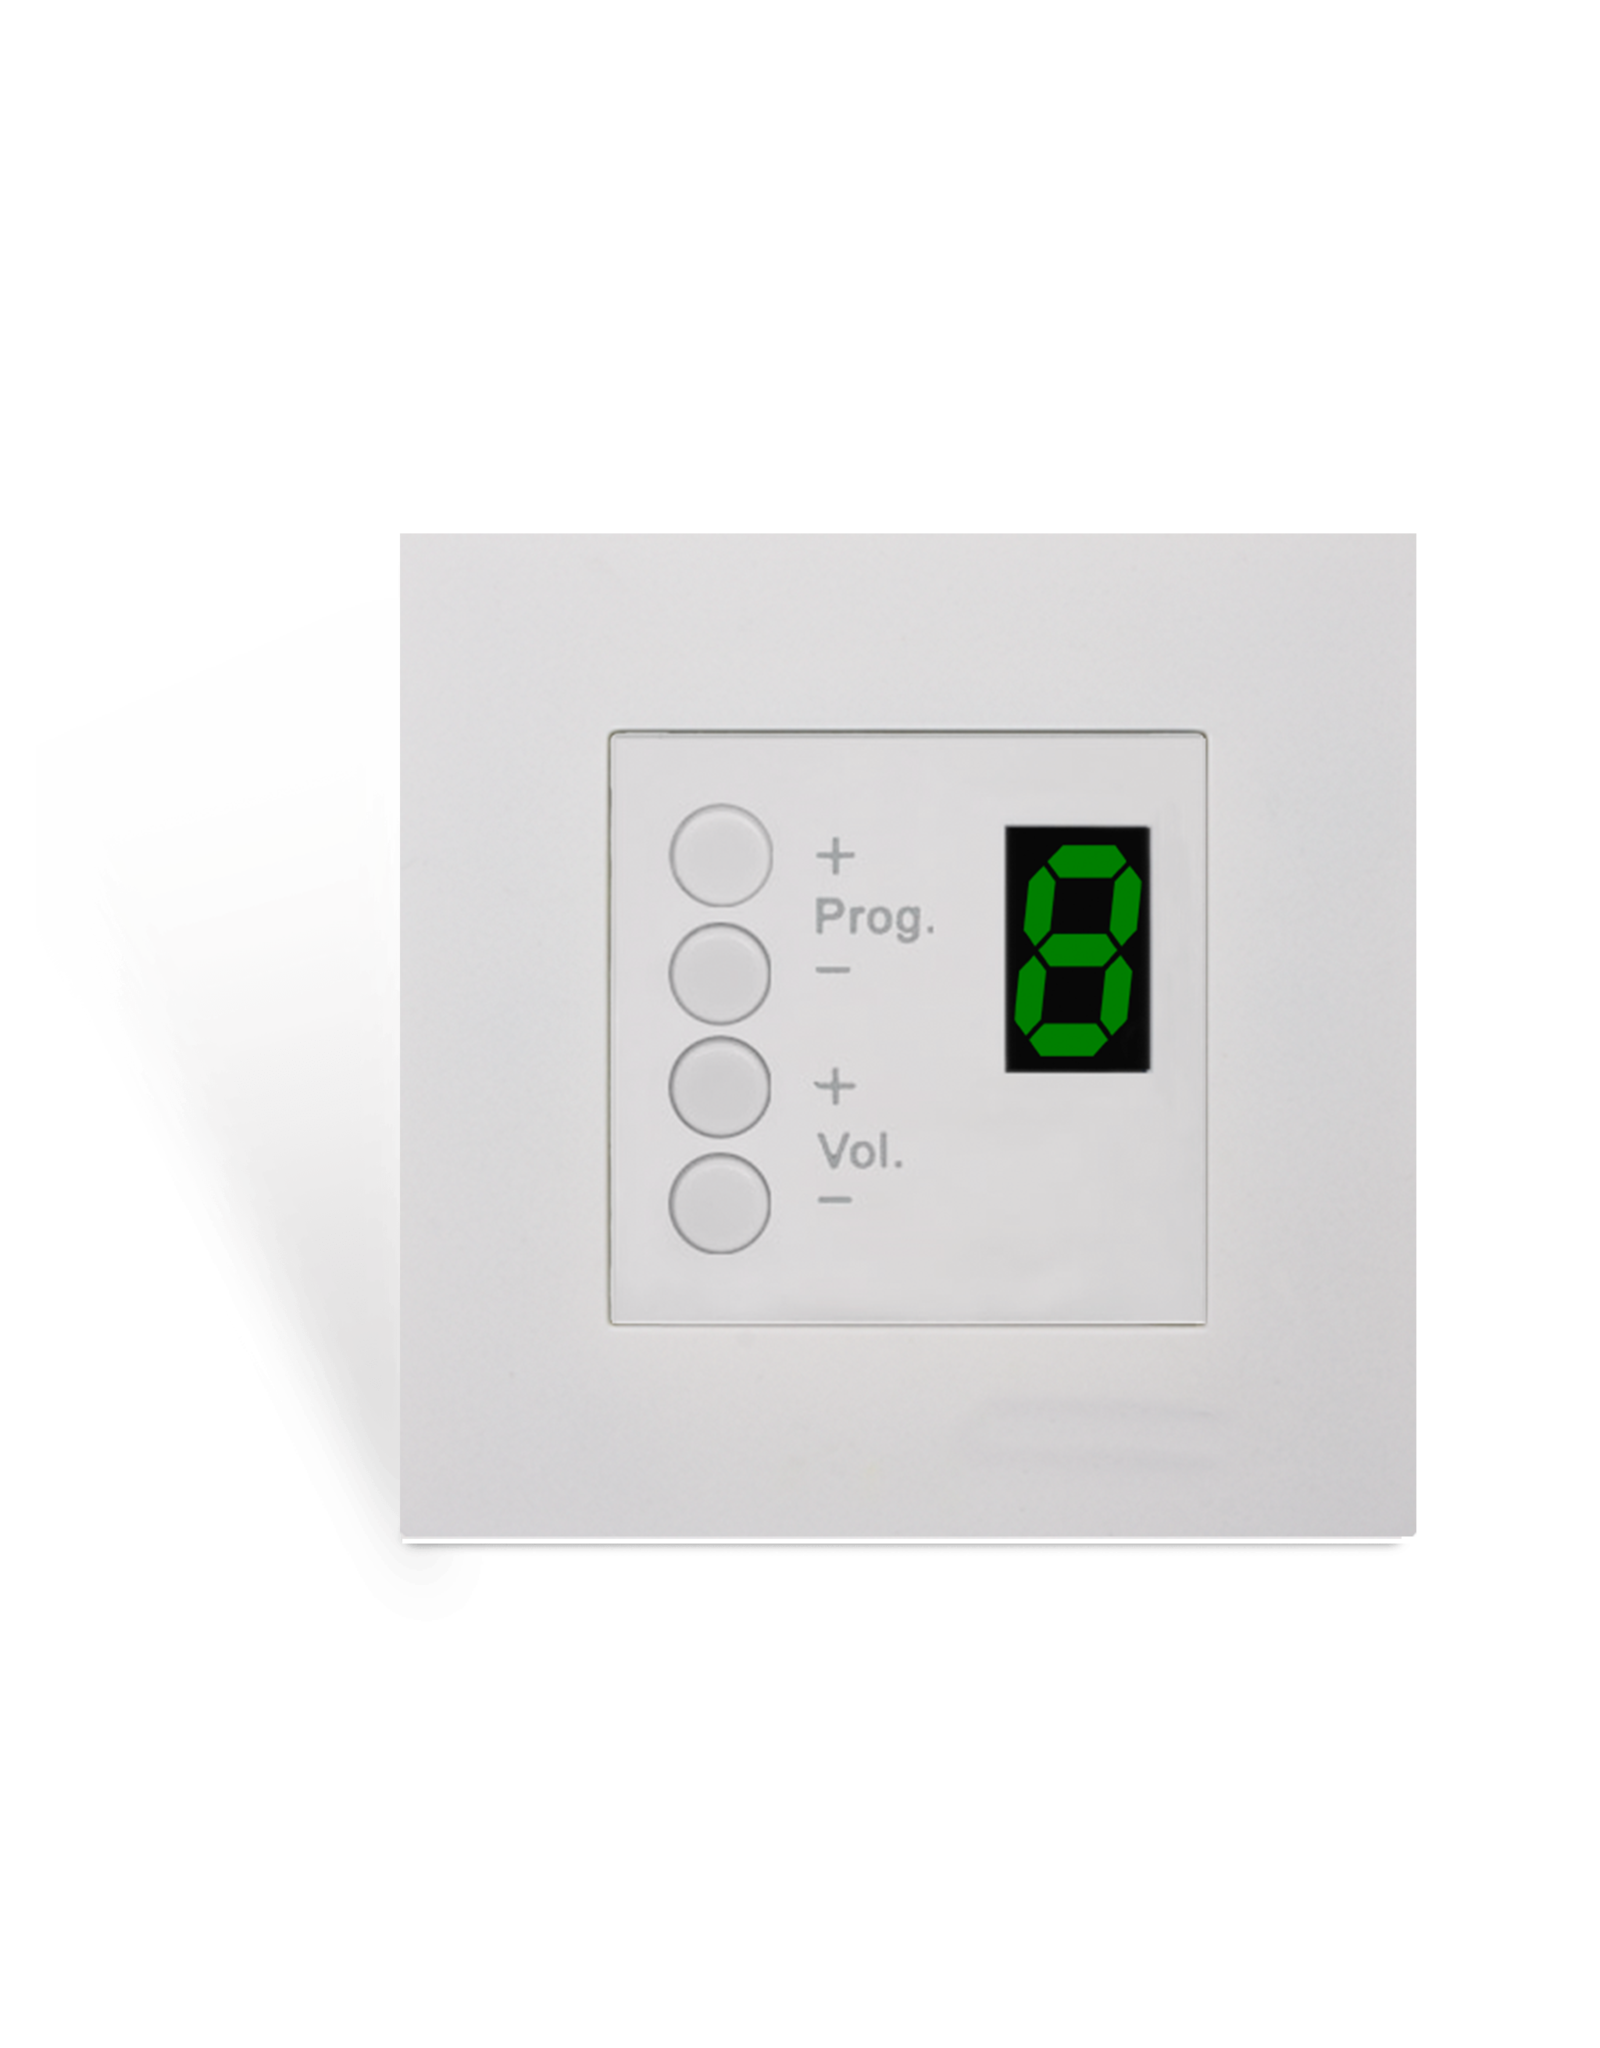 Audac Wall panel controller 8 zones for 45x45 standard White version